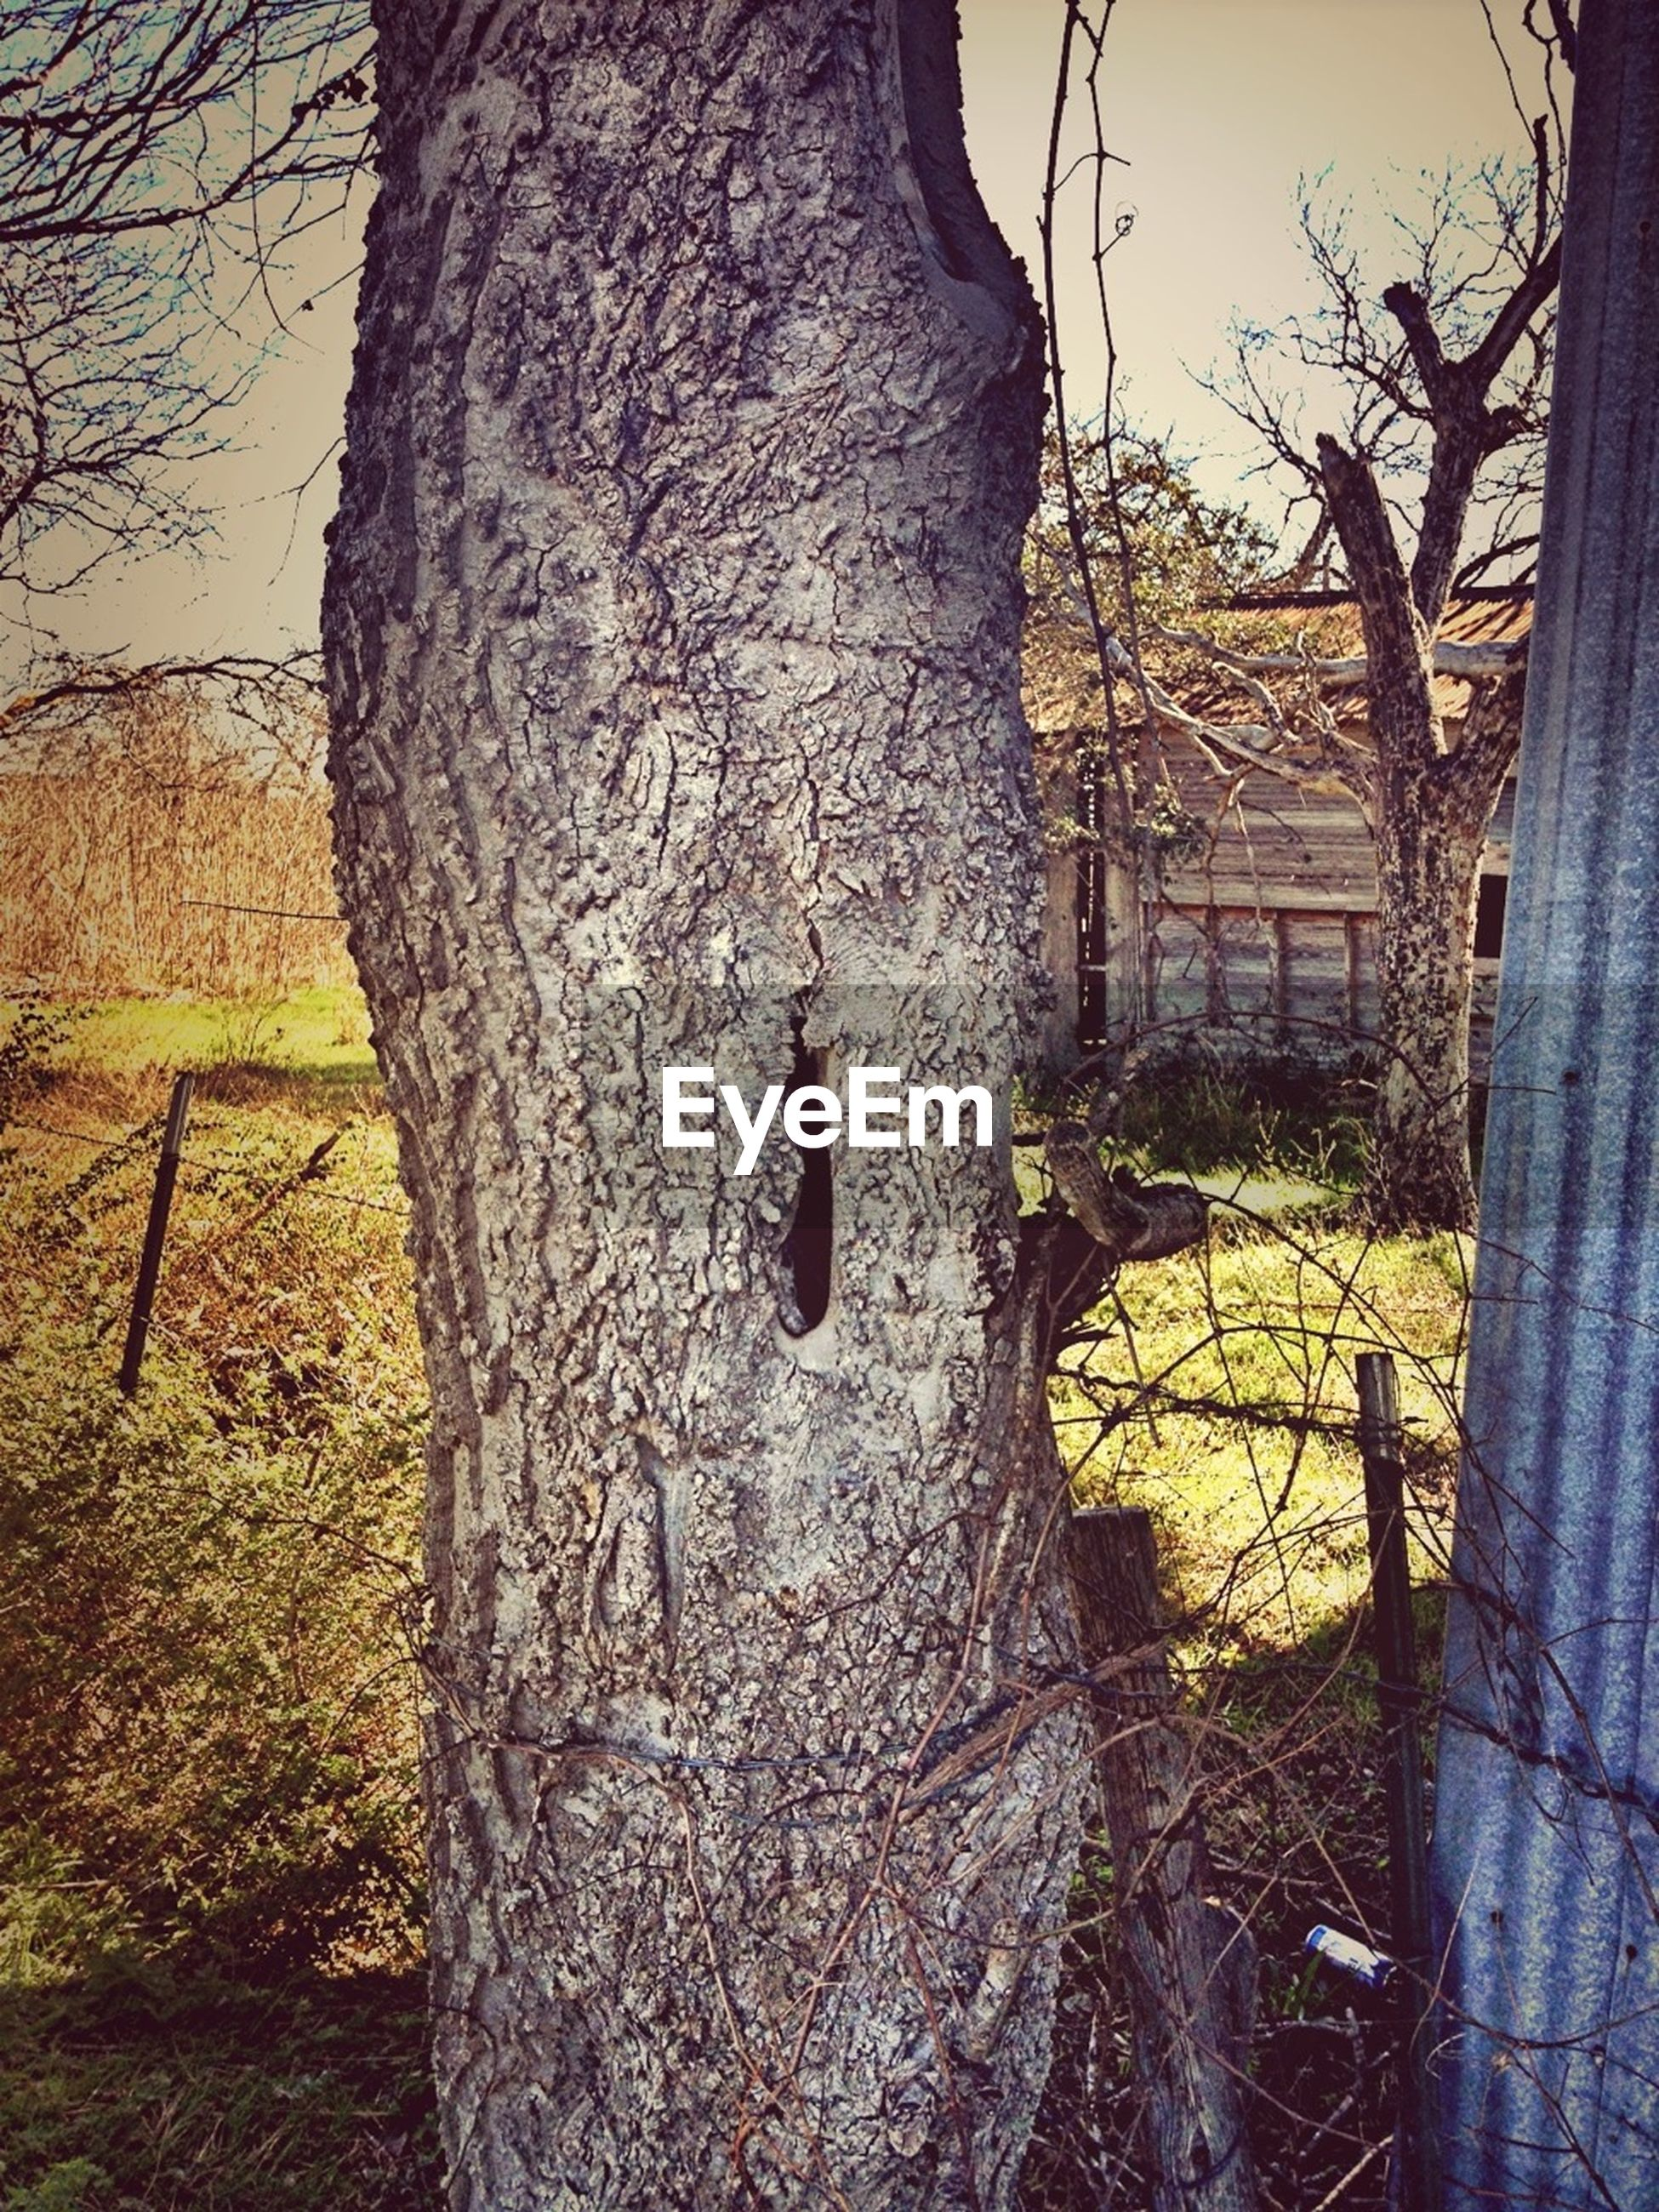 tree, tree trunk, field, built structure, grass, building exterior, architecture, bare tree, fence, day, outdoors, nature, growth, sunlight, no people, sky, branch, house, abandoned, old